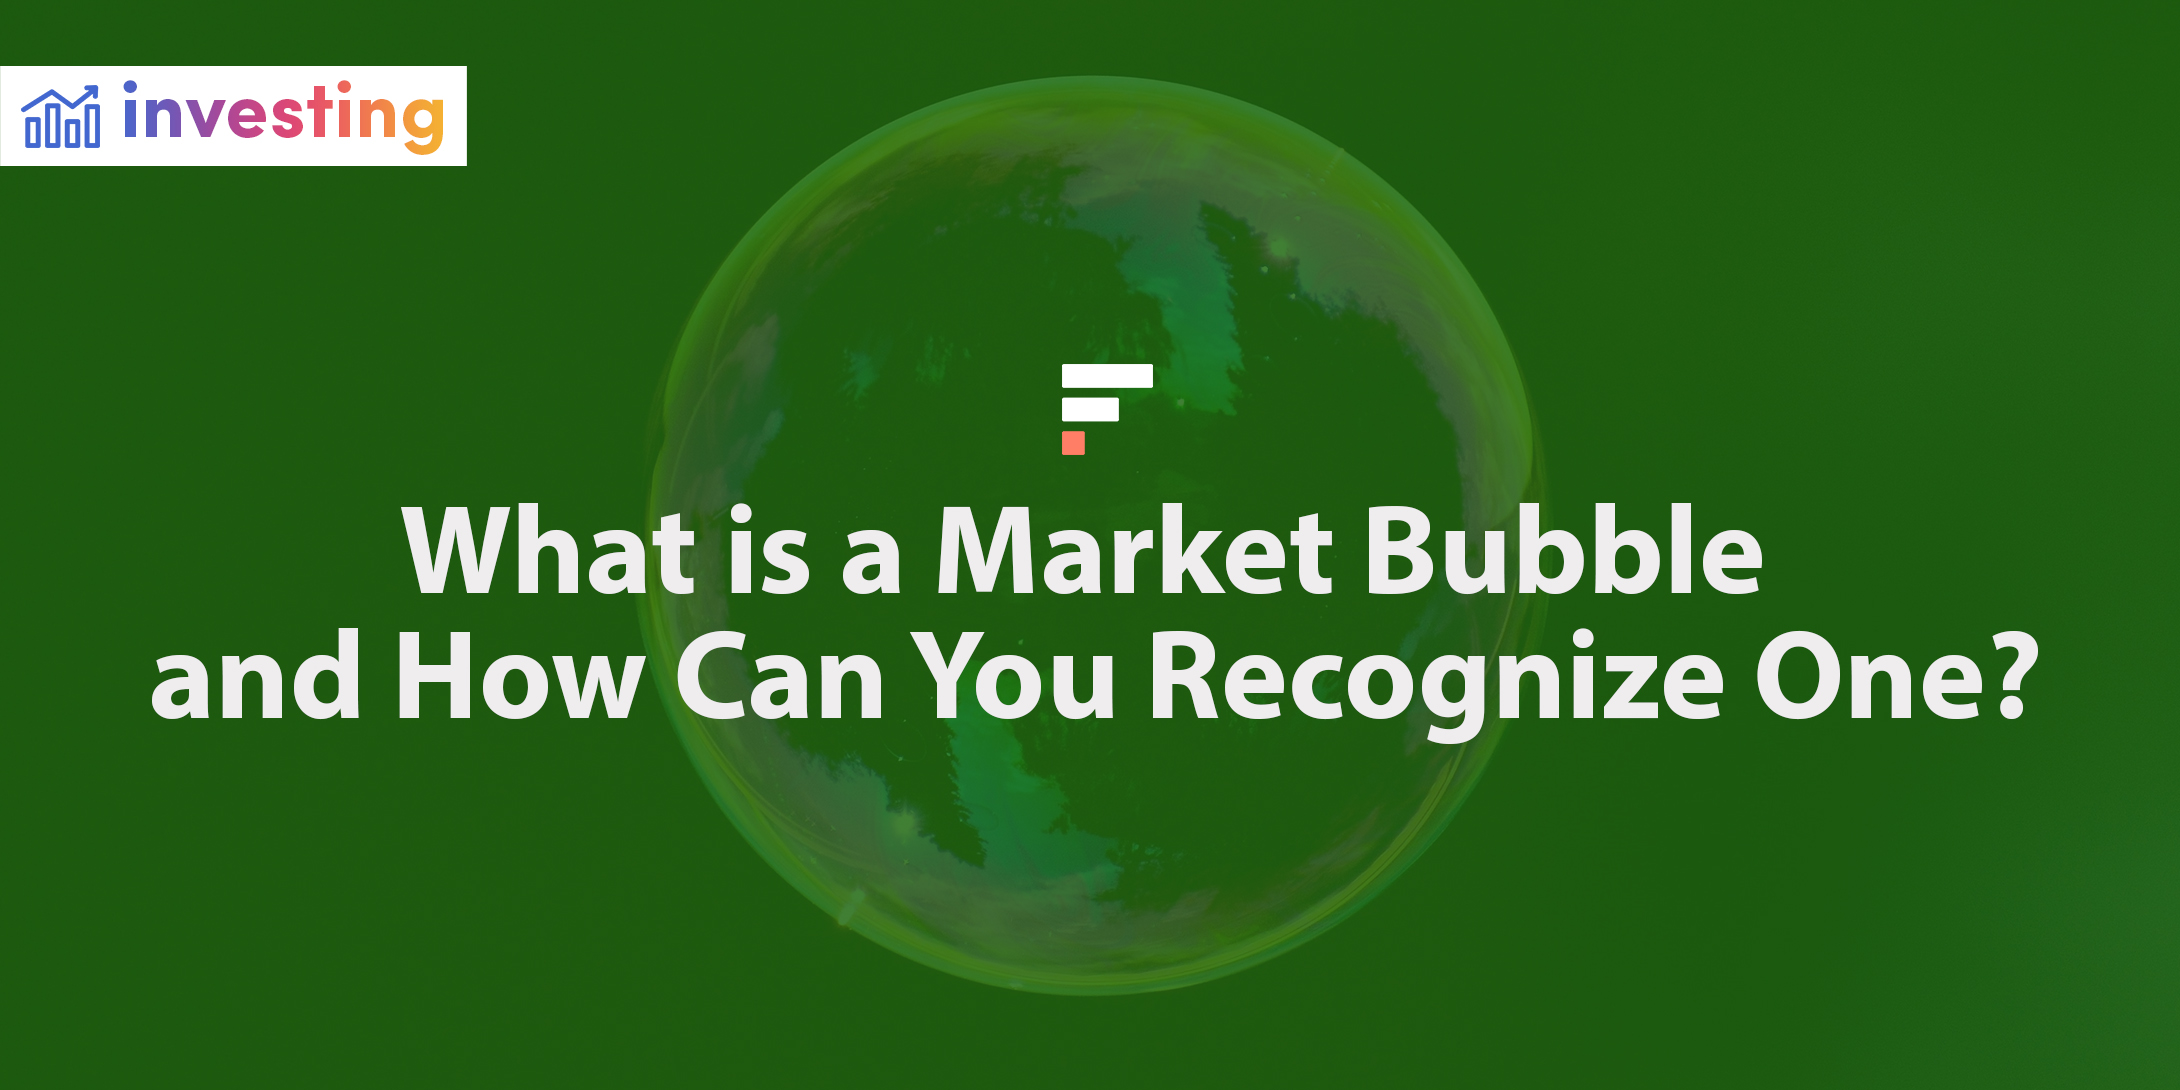 What is a market bubble and how can you recognize one?